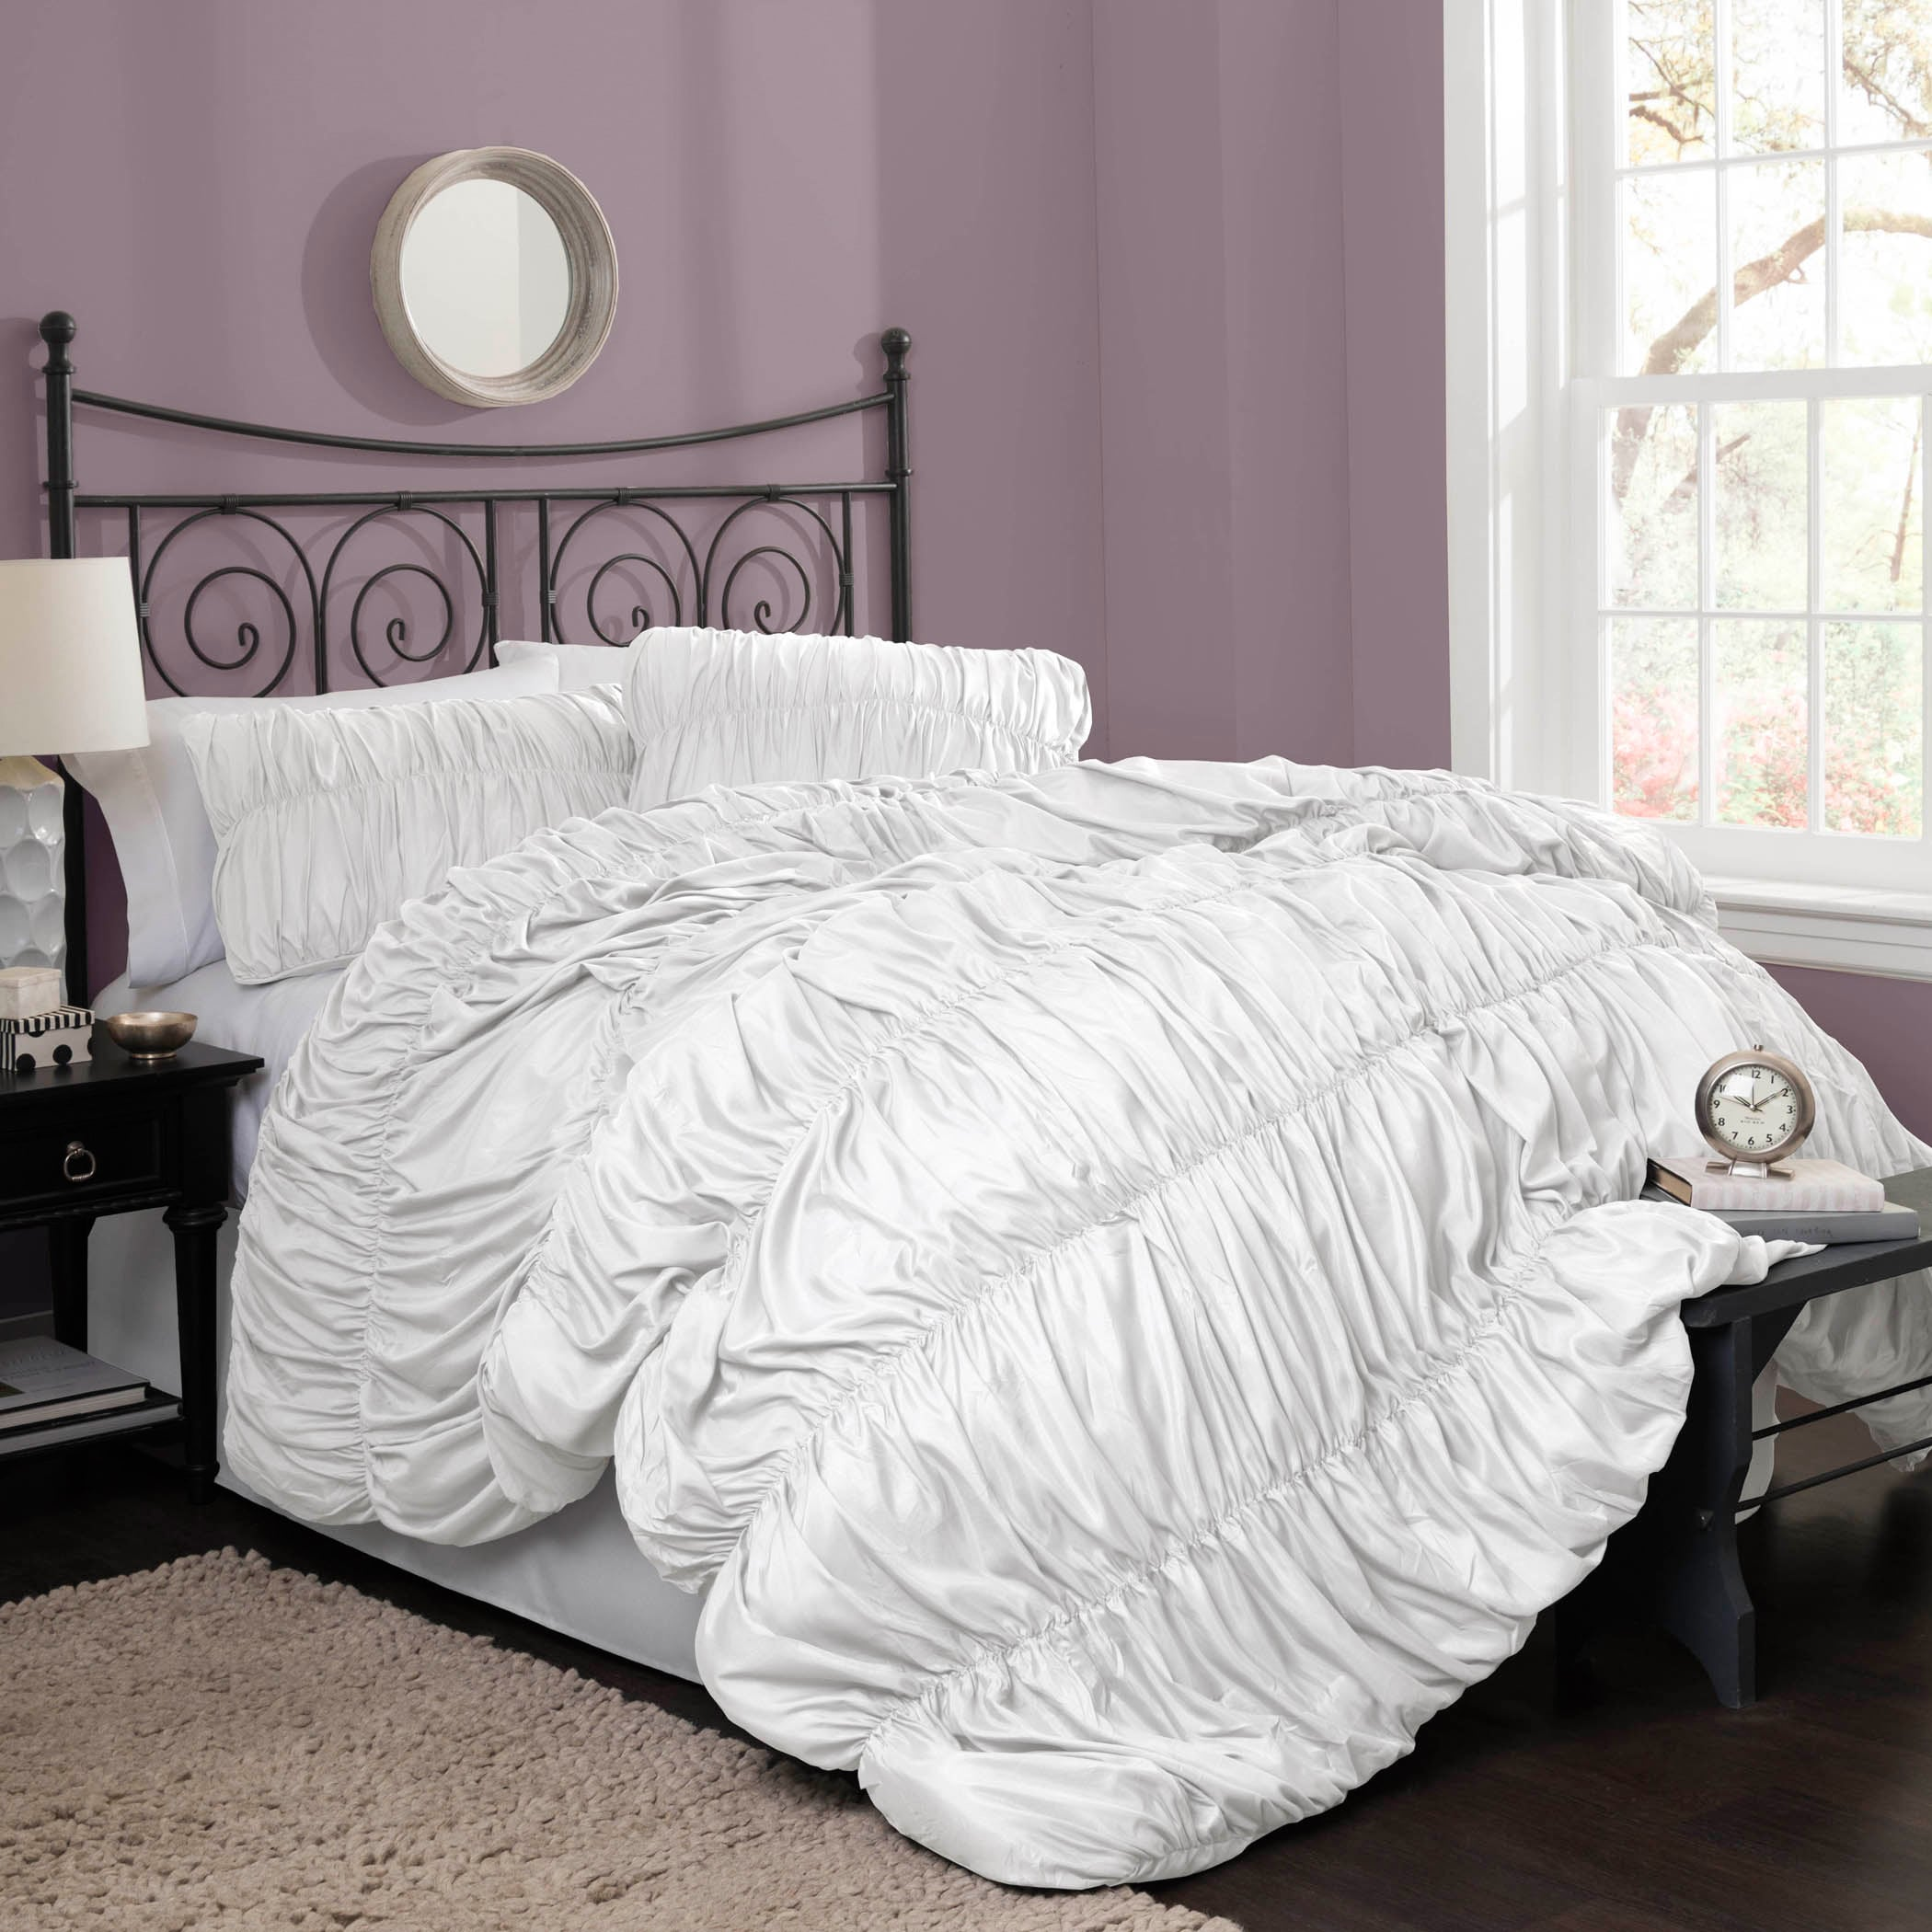 set manor product comforter avondale bath com free madrid shipping piece on bedding overstock bed